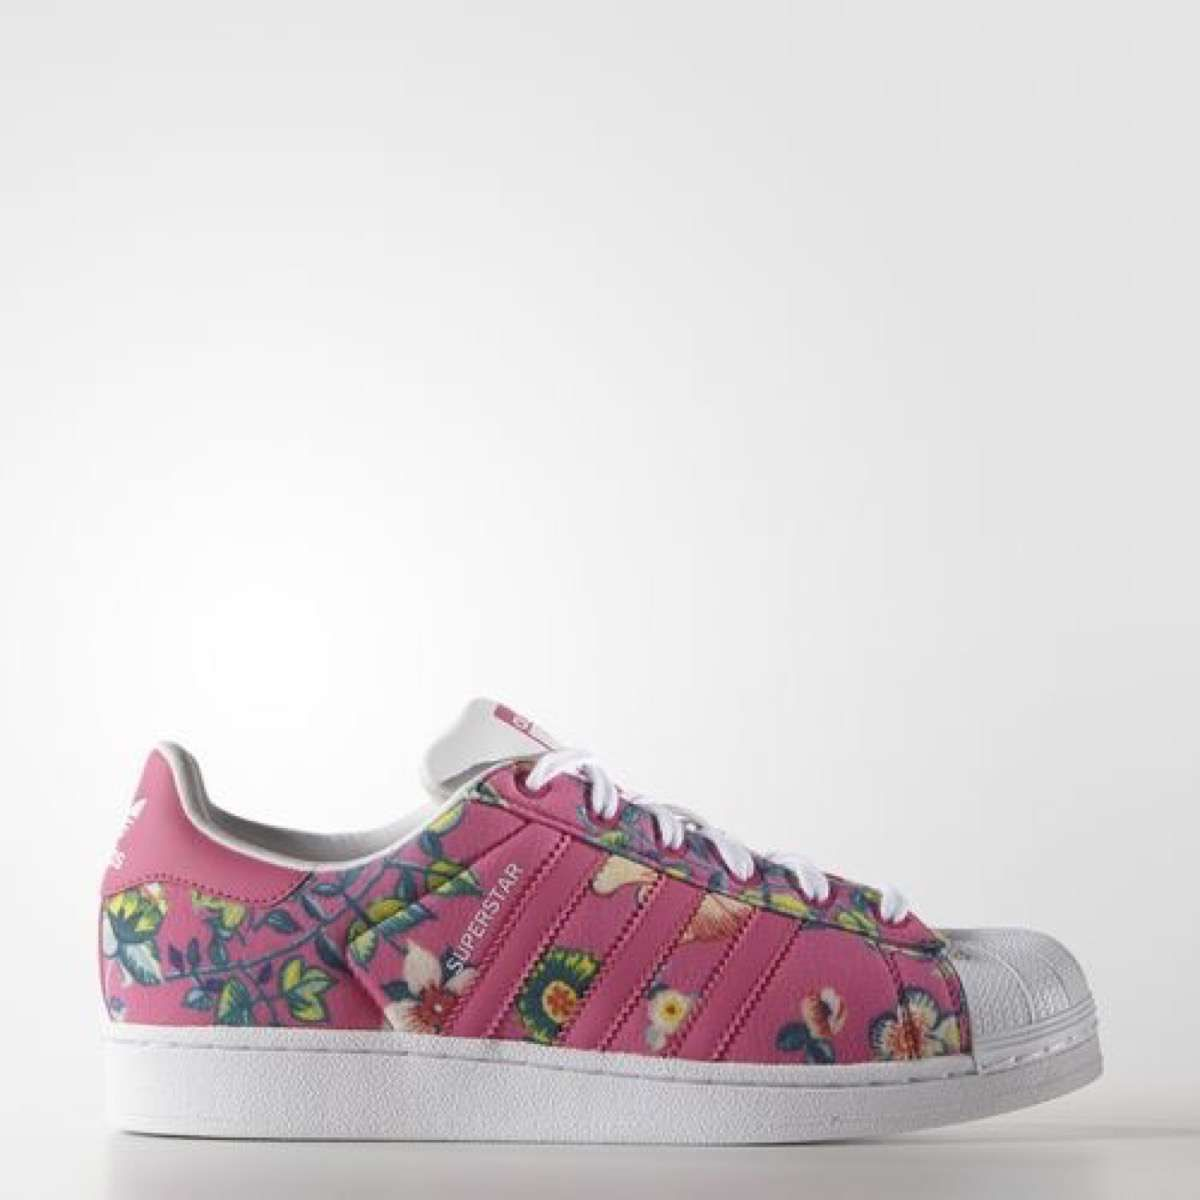 New Balance Adidas Superstar Ii Frauen Schmetterlinge Blumen